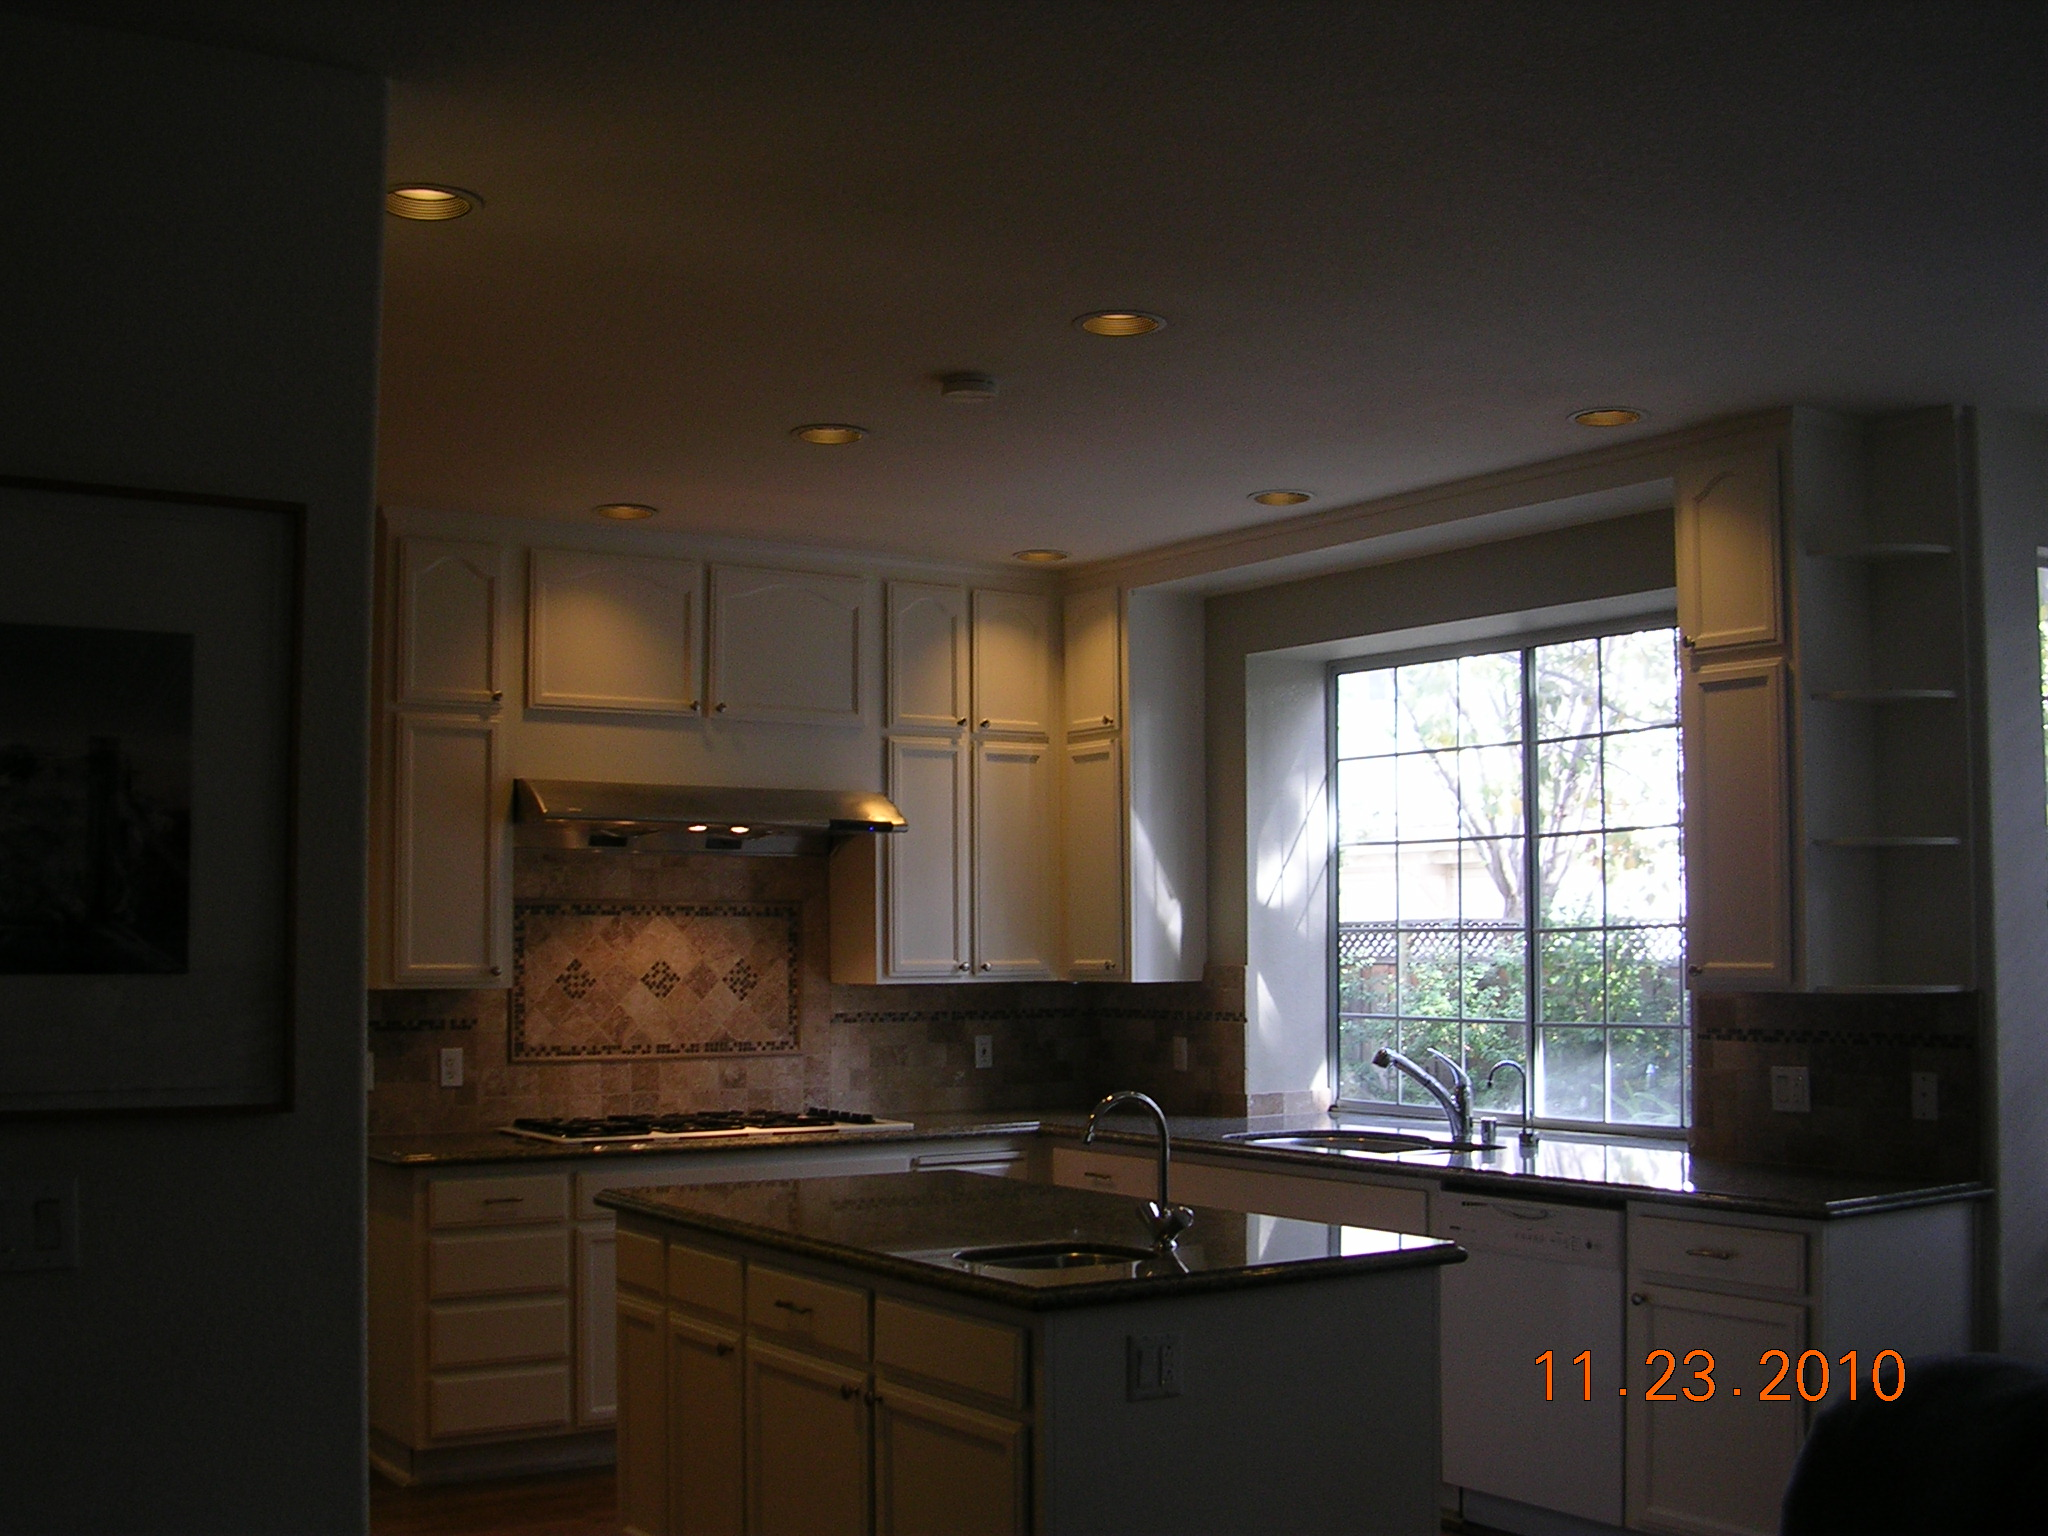 Piracema White Granite Kitchen Counter Culture Just Another Wordpresscom Weblog Page 5